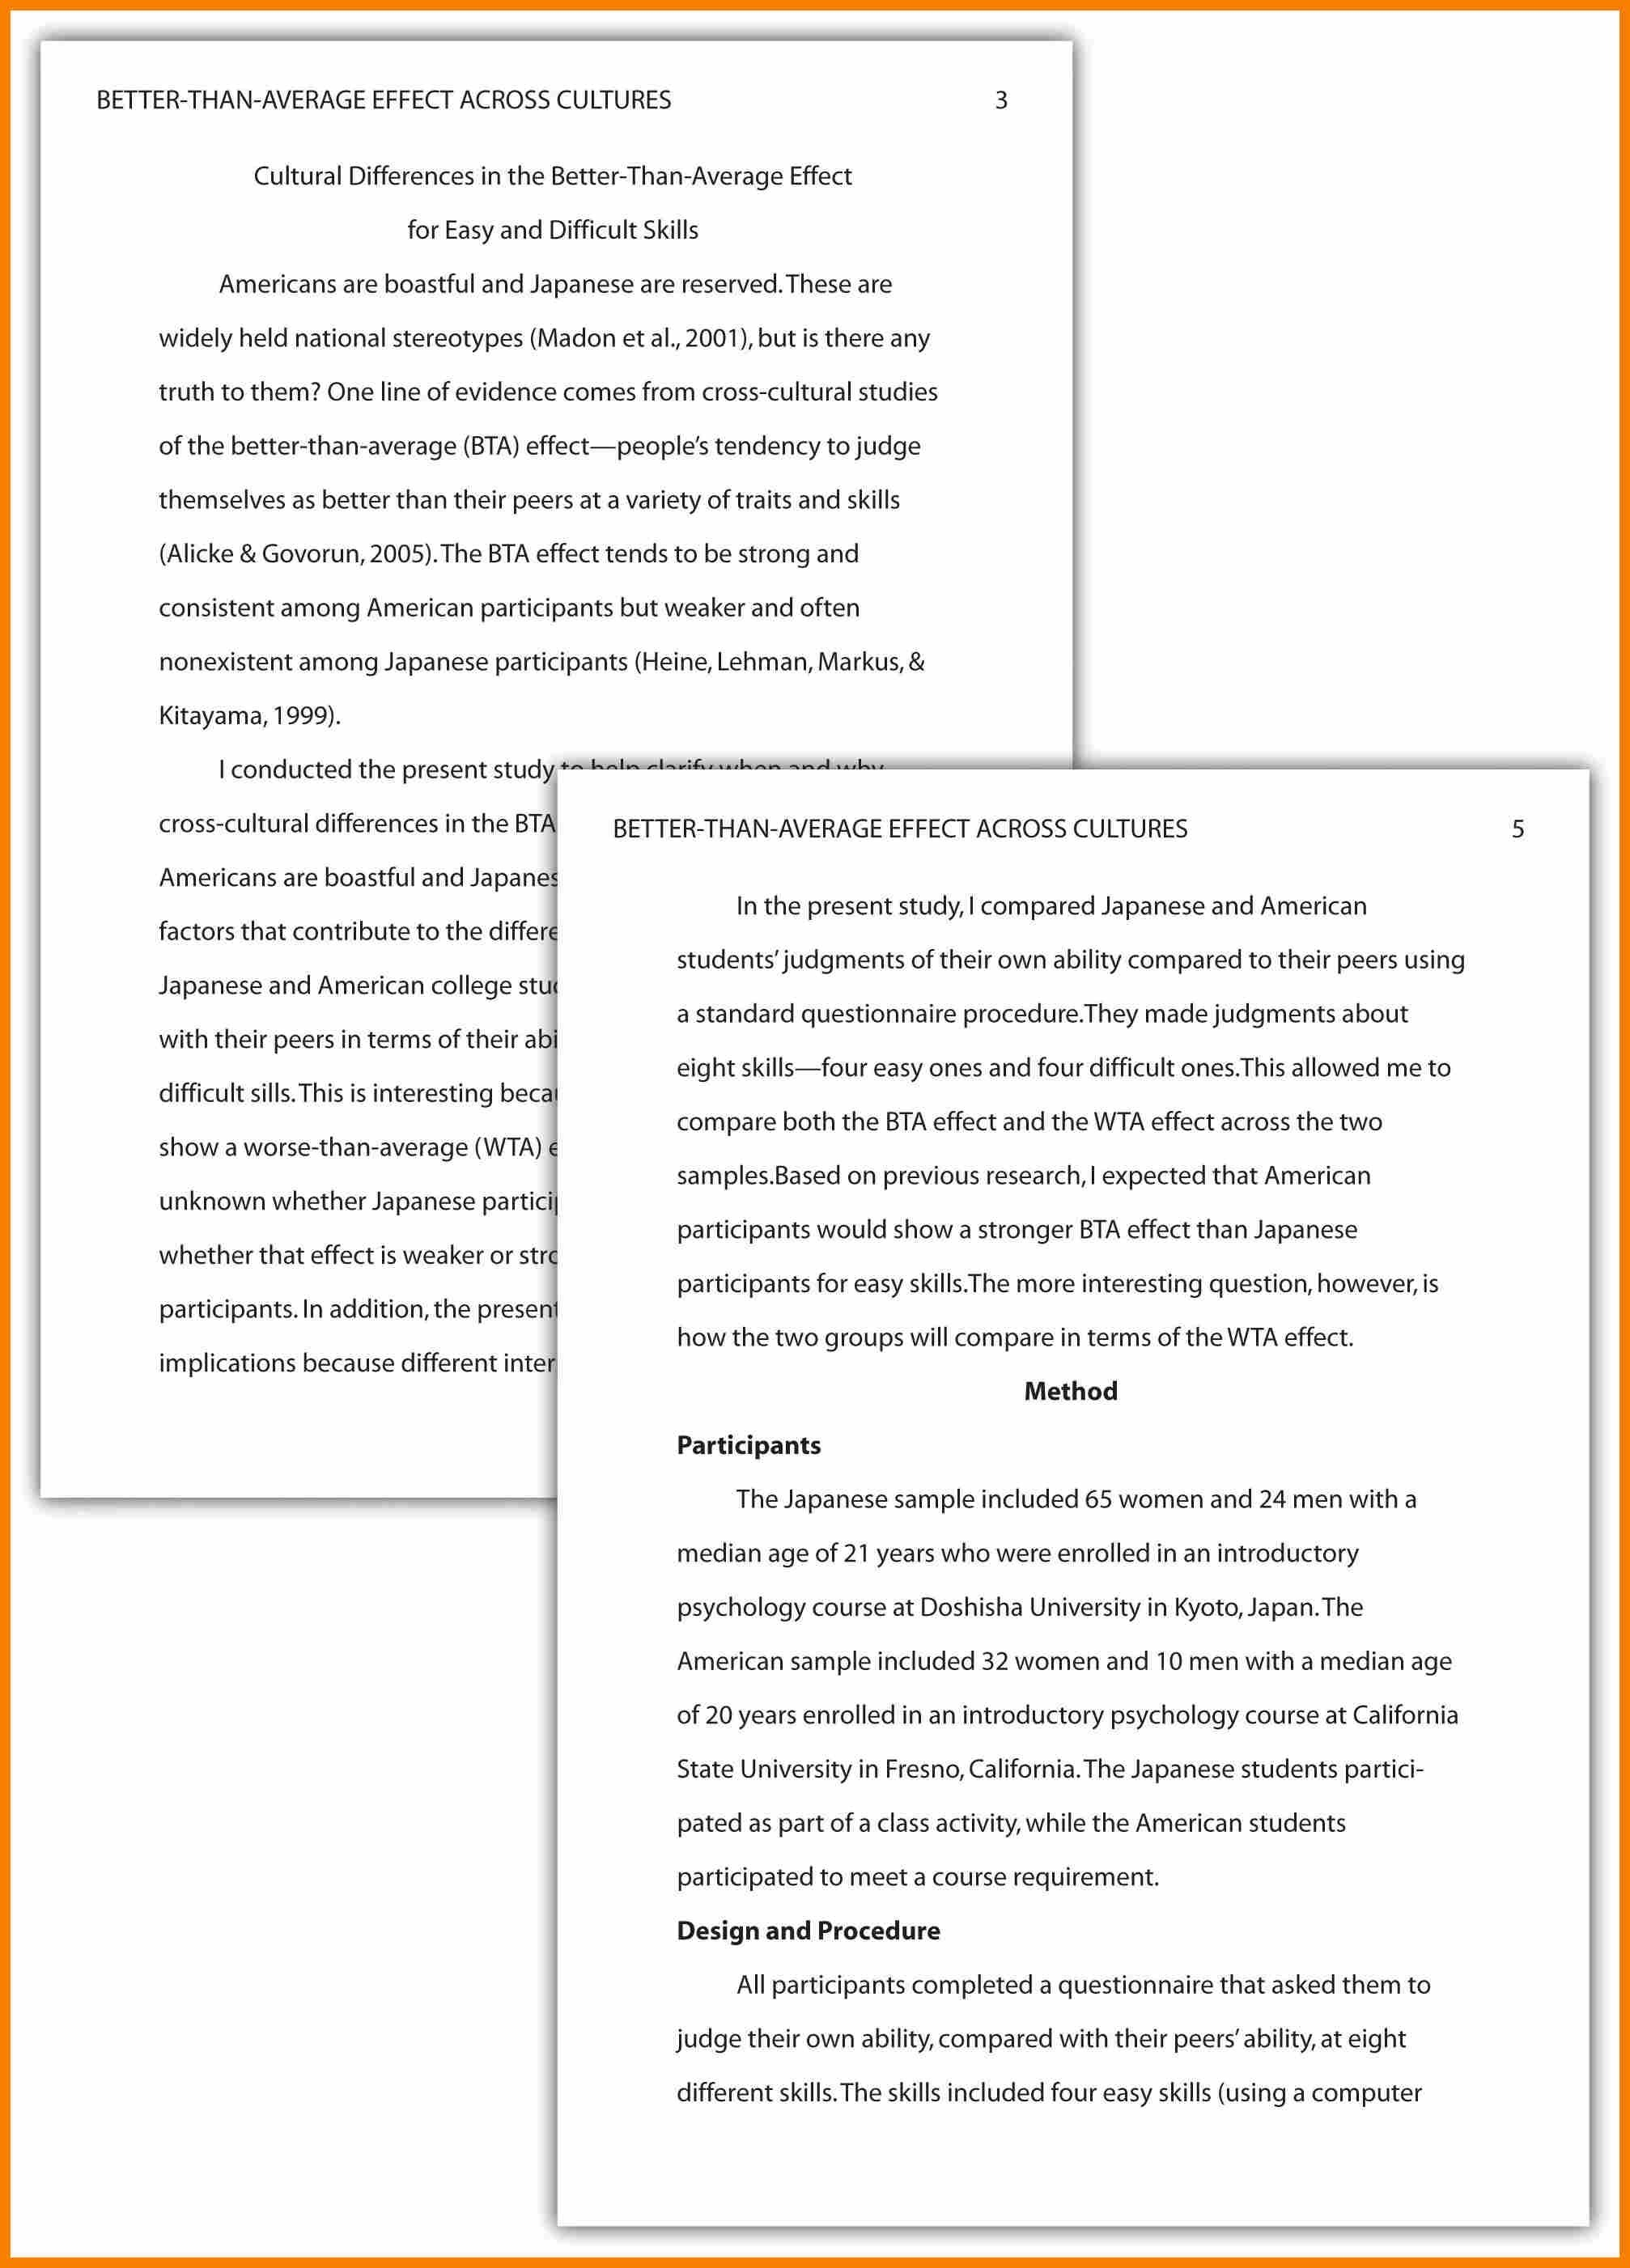 026 Essay Format Example Research Paper Apa Of Reflective In Style Ideas Collection Apamethods How To Write Unique Examples What Frightening For Middle School 2017 Writing College Full